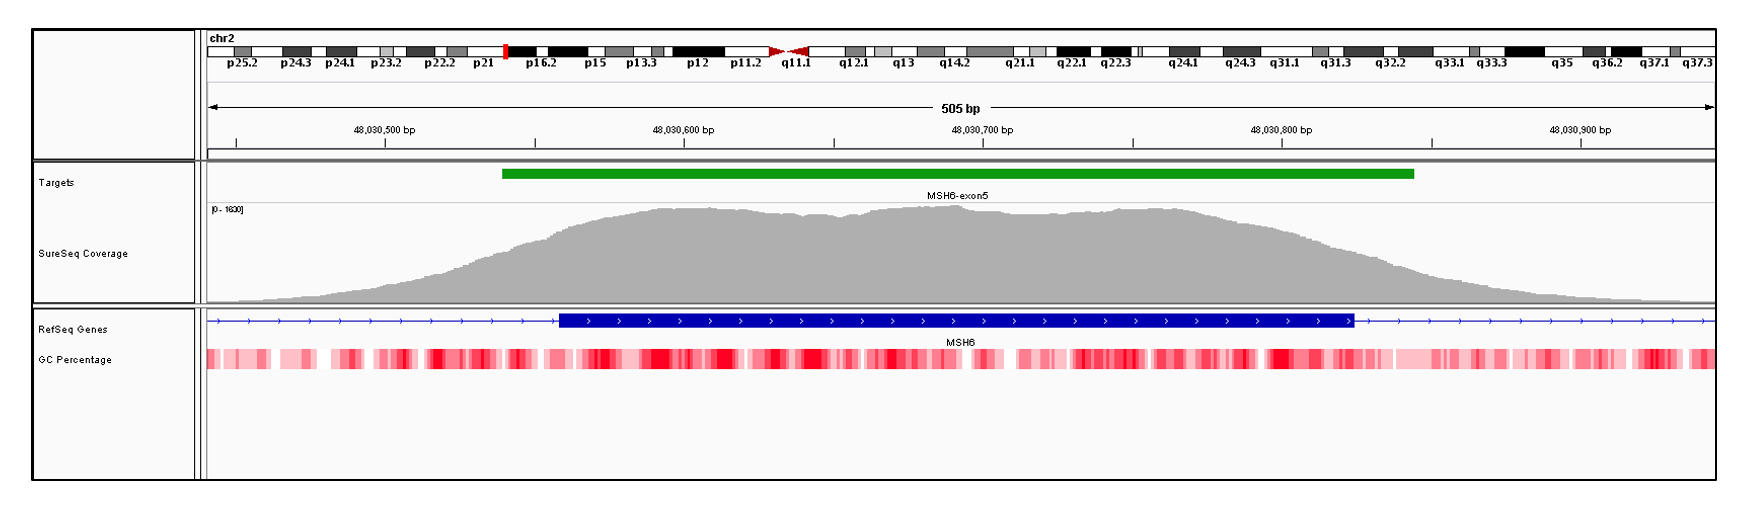 MSH6 Exon 5 (hg19 chr2:48030559-48030824). Depth of coverage per base (grey). Targeted region (green). Gene coding region as defined by RefSeq (blue). GC percentage (red). Image